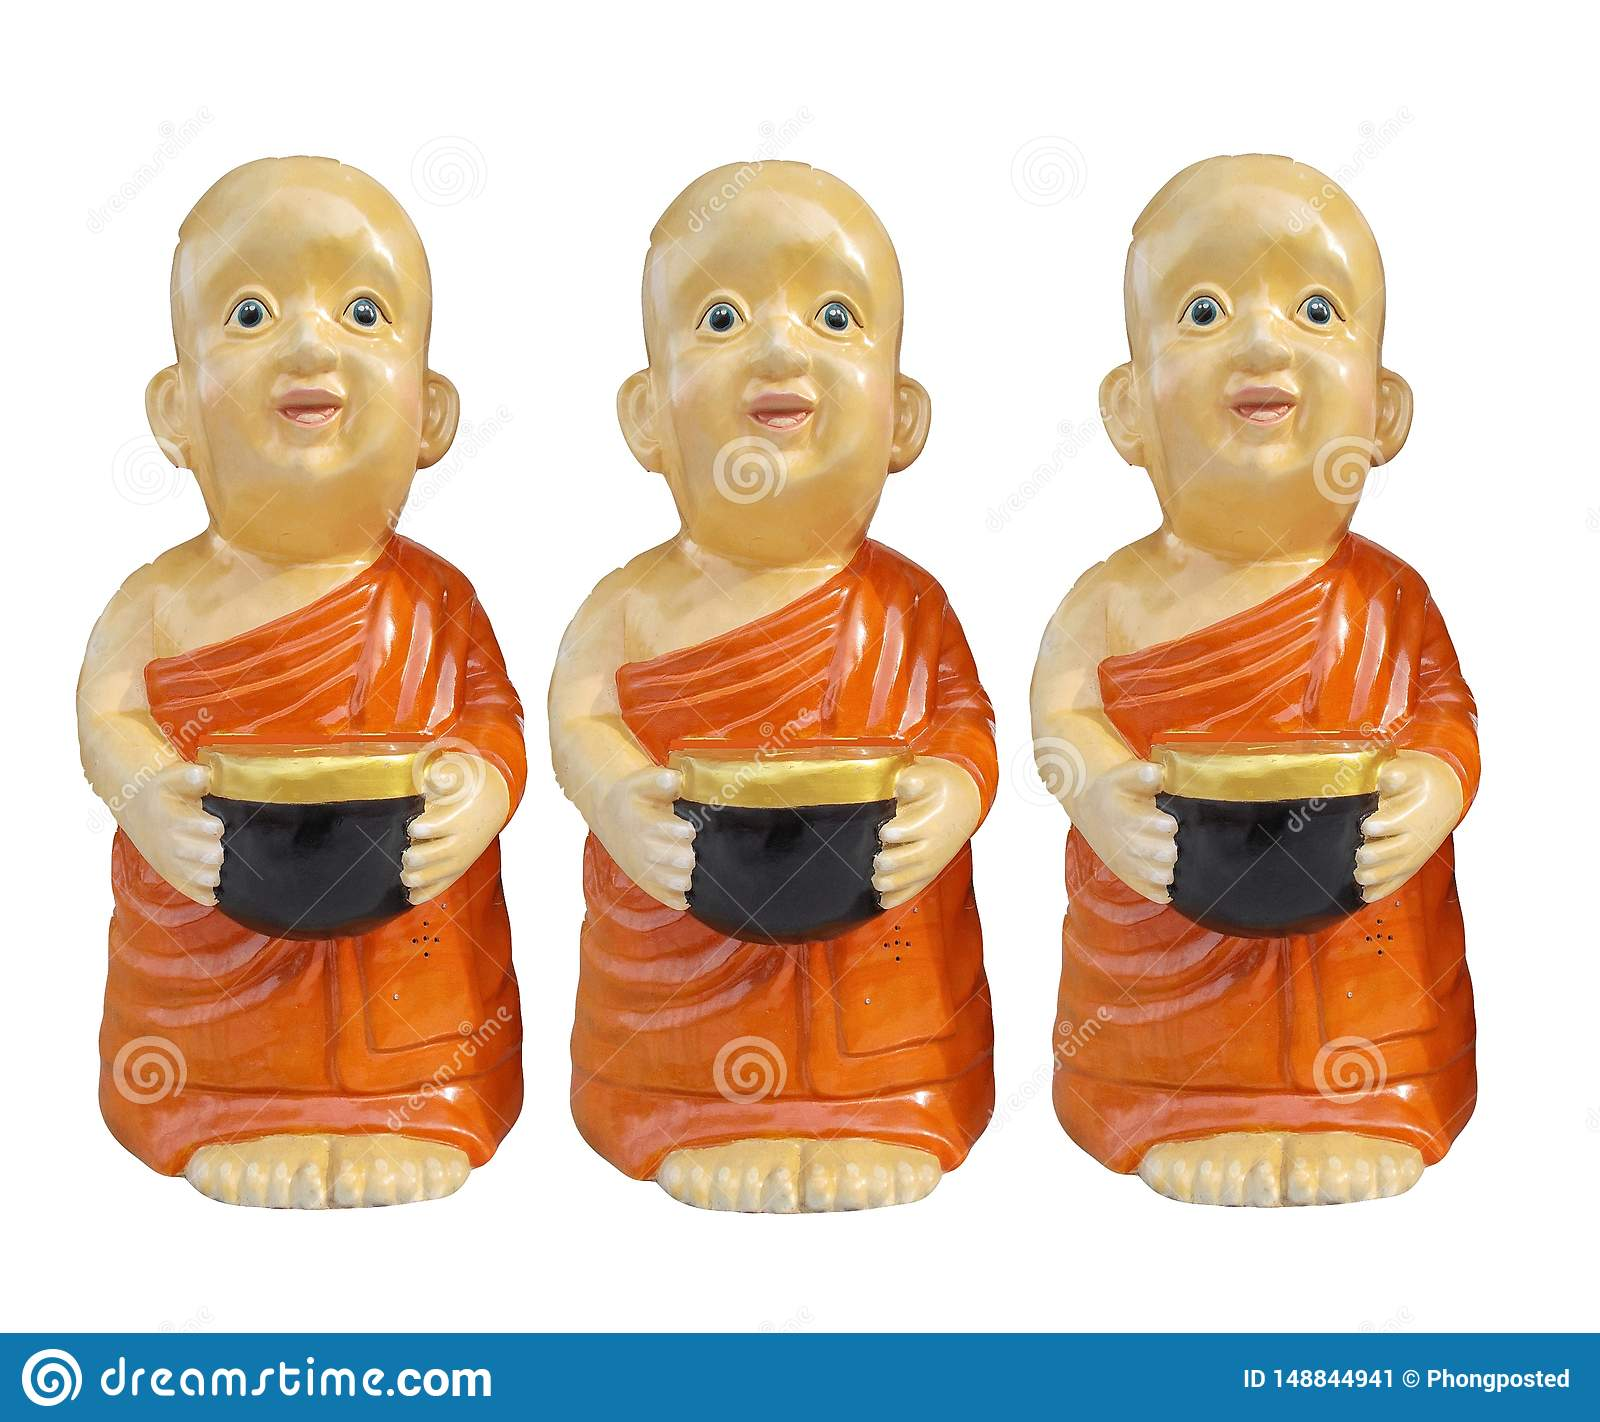 Buddhist novice resin characters holding alms bowl in hand isolated on white background